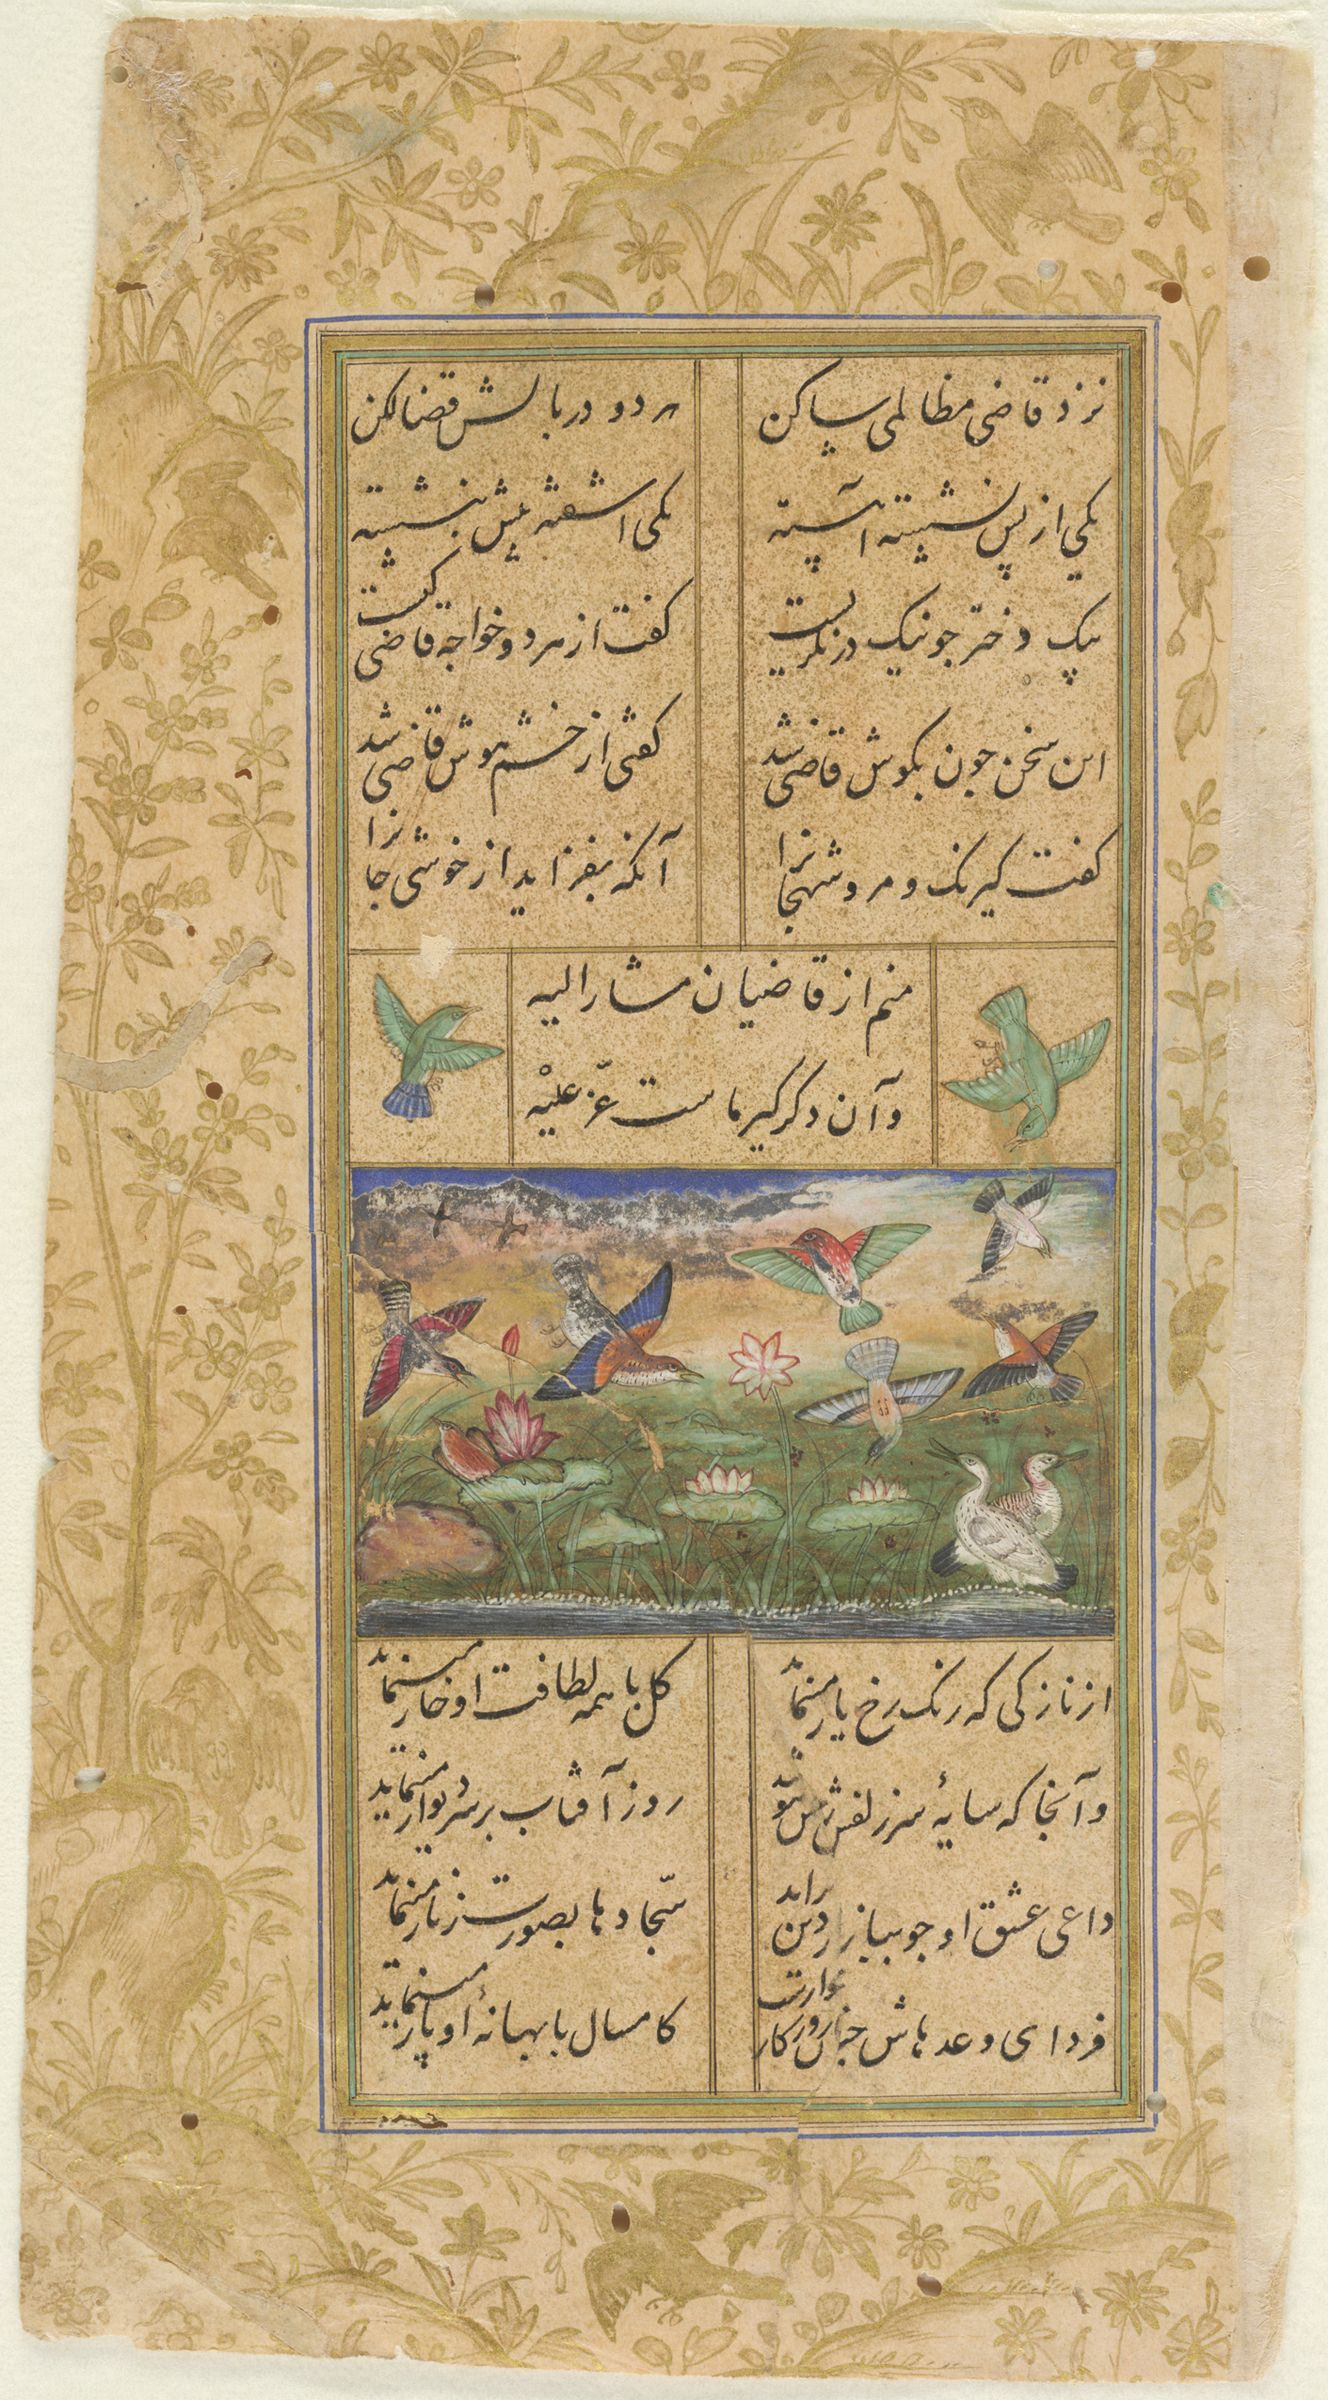 Birds And Lotus (Painting, Recto, Text, Verso), Folio 336 From A Manuscript Of The Divan Of Anvari